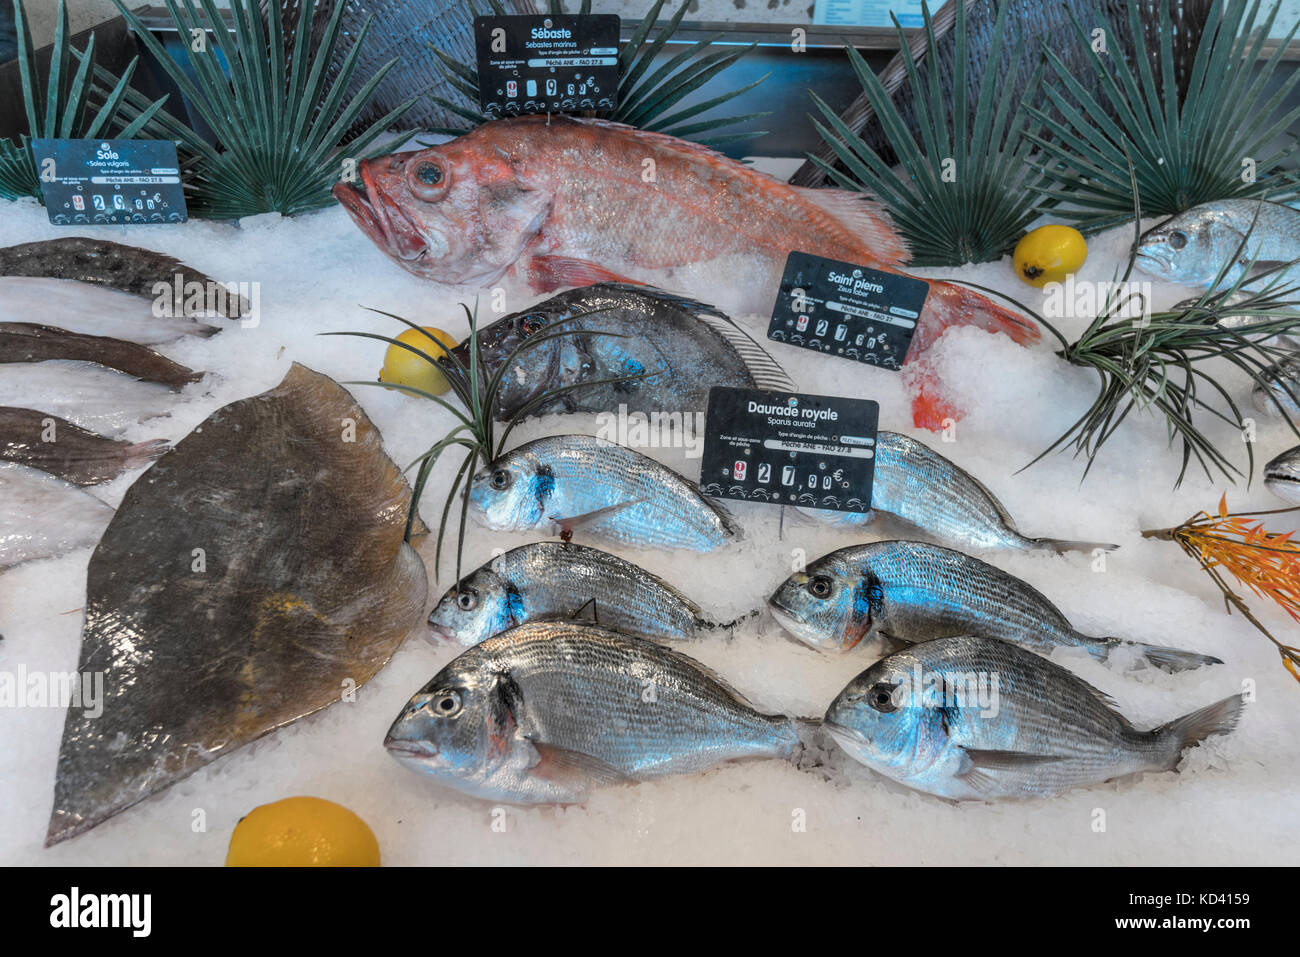 fish market, fruits de Mer, Ile de Re, Nouvelle-Aquitaine, french westcoast, france, - Stock Image